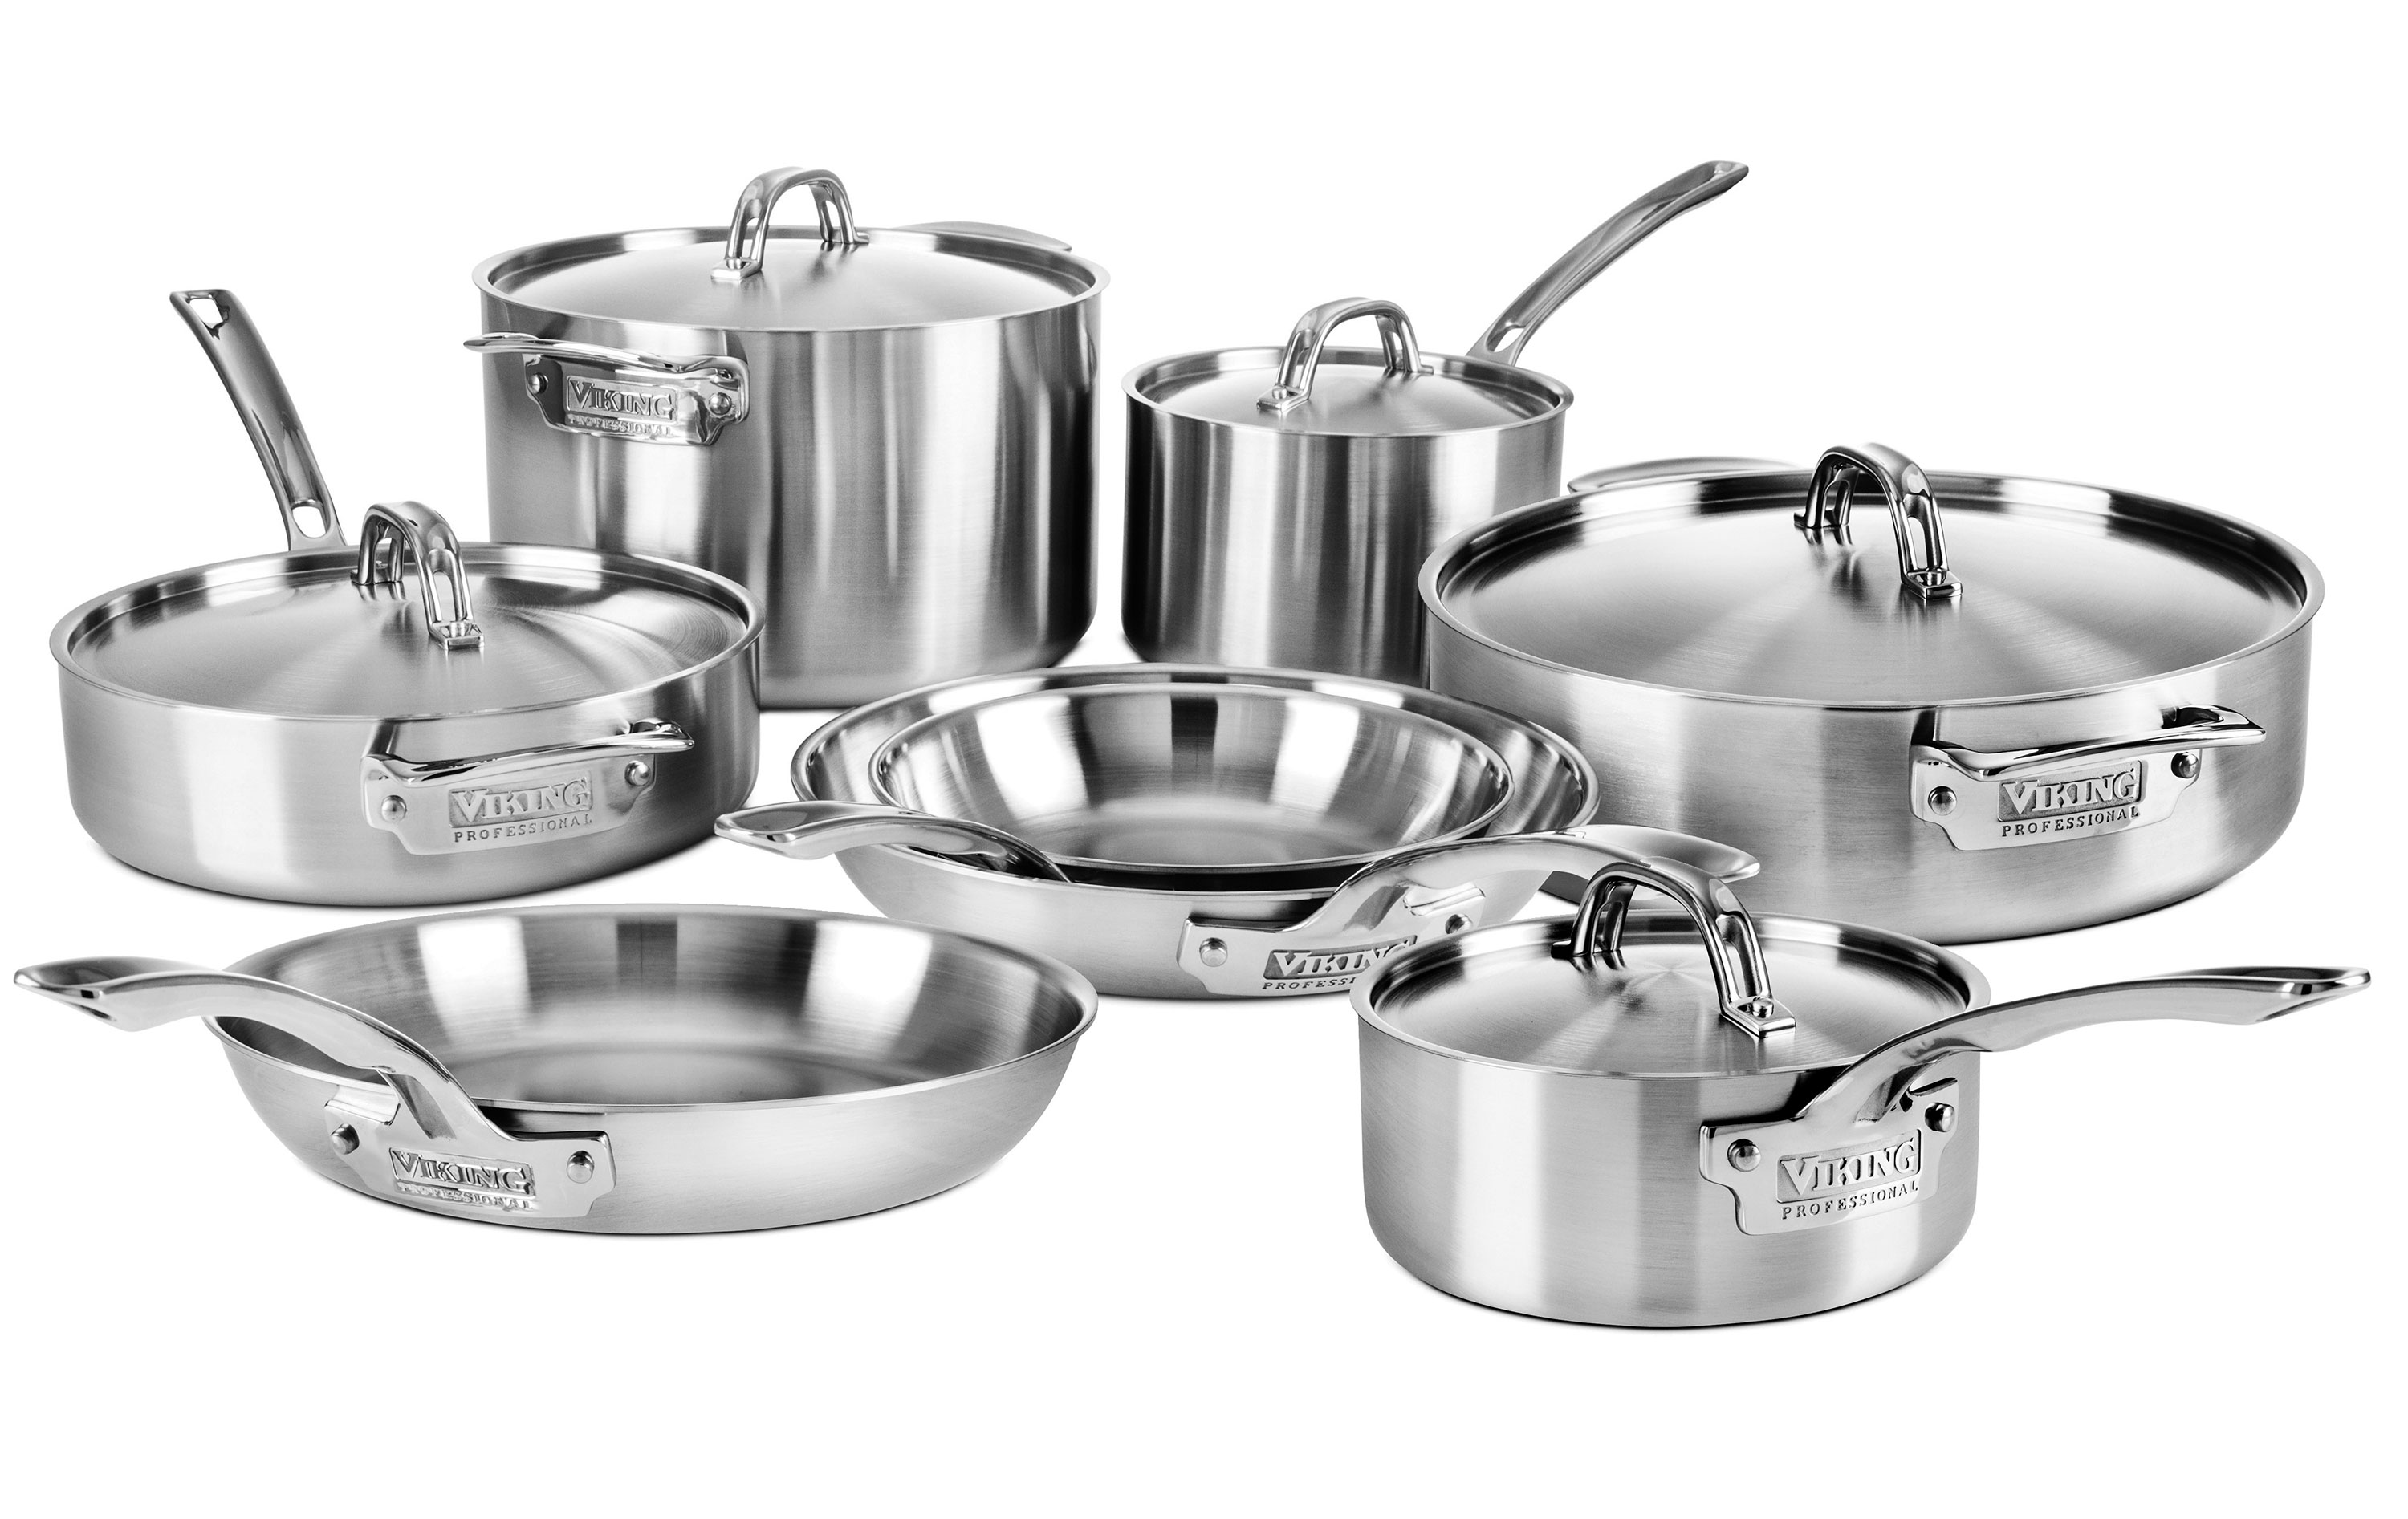 Viking Cookware Set 5 Ply Pro Stainless Steel 13 Piece Cutlery And More